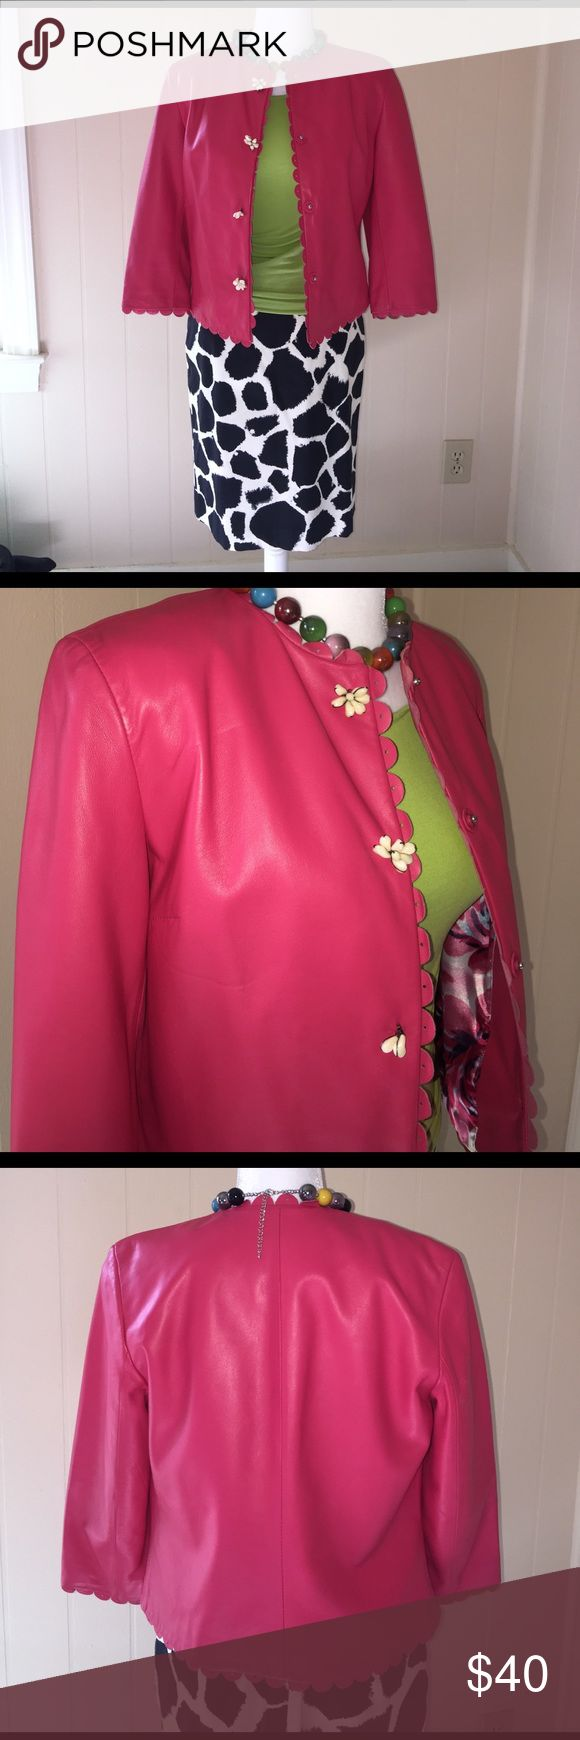 Rosy Pink Leather Jacket with Scalloped Trim Cutest leather jacket of all time! The edges are trimmed with punched scalloped pink leather. It is lined in floral satin. The front snaps are covered by shell buttons. The third one down has fewer beads than the other, but it really does not detract. Otherwise excellent condition. Measurements: under arm to under arm 18 inches, length 21 inches. Siena Studio Jackets & Coats